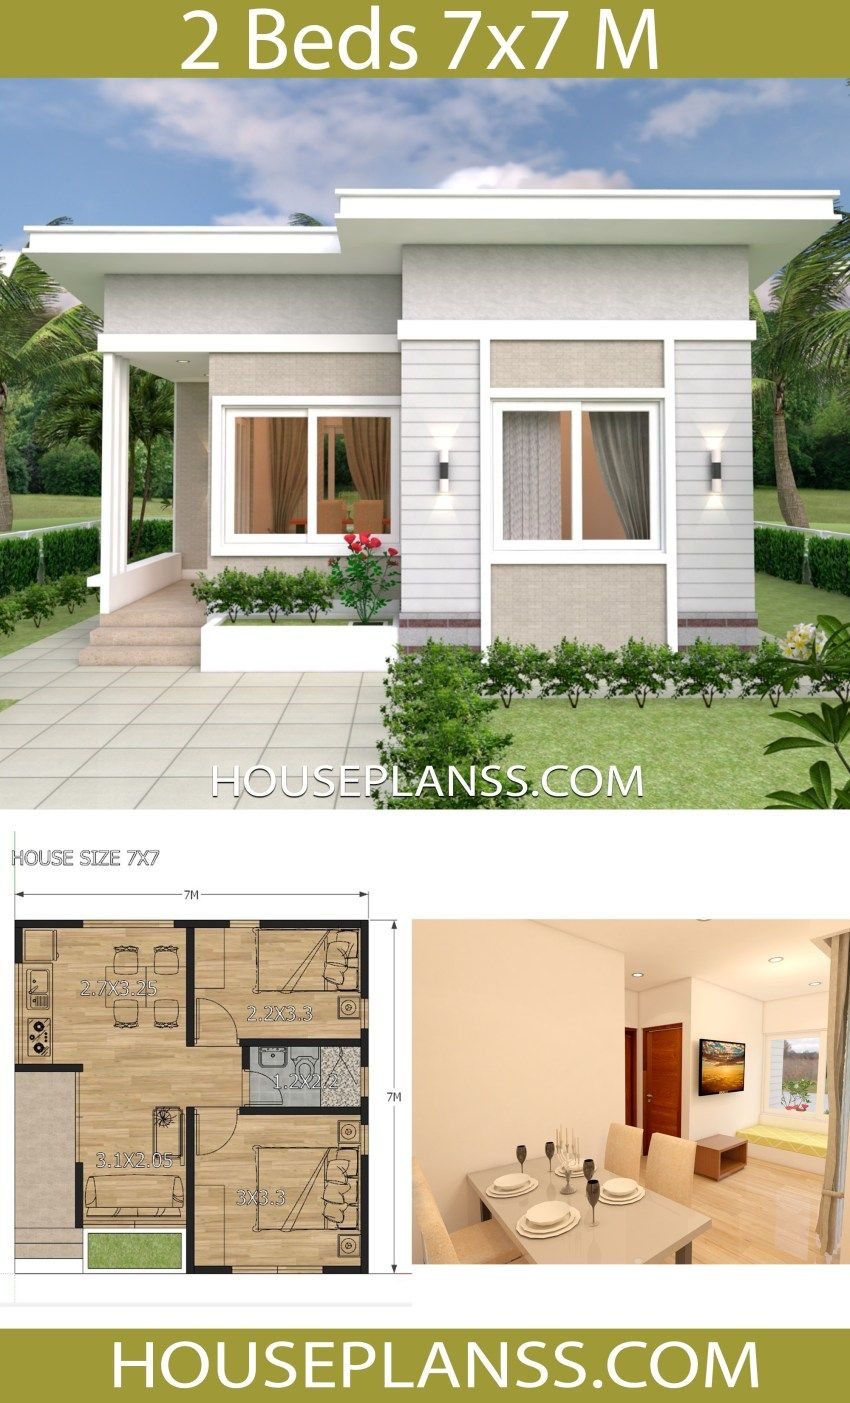 Small House Design Plans 7x7 With 2 Bedrooms House Plans 3d Small House Design Plans Small House Exteriors Small House Design